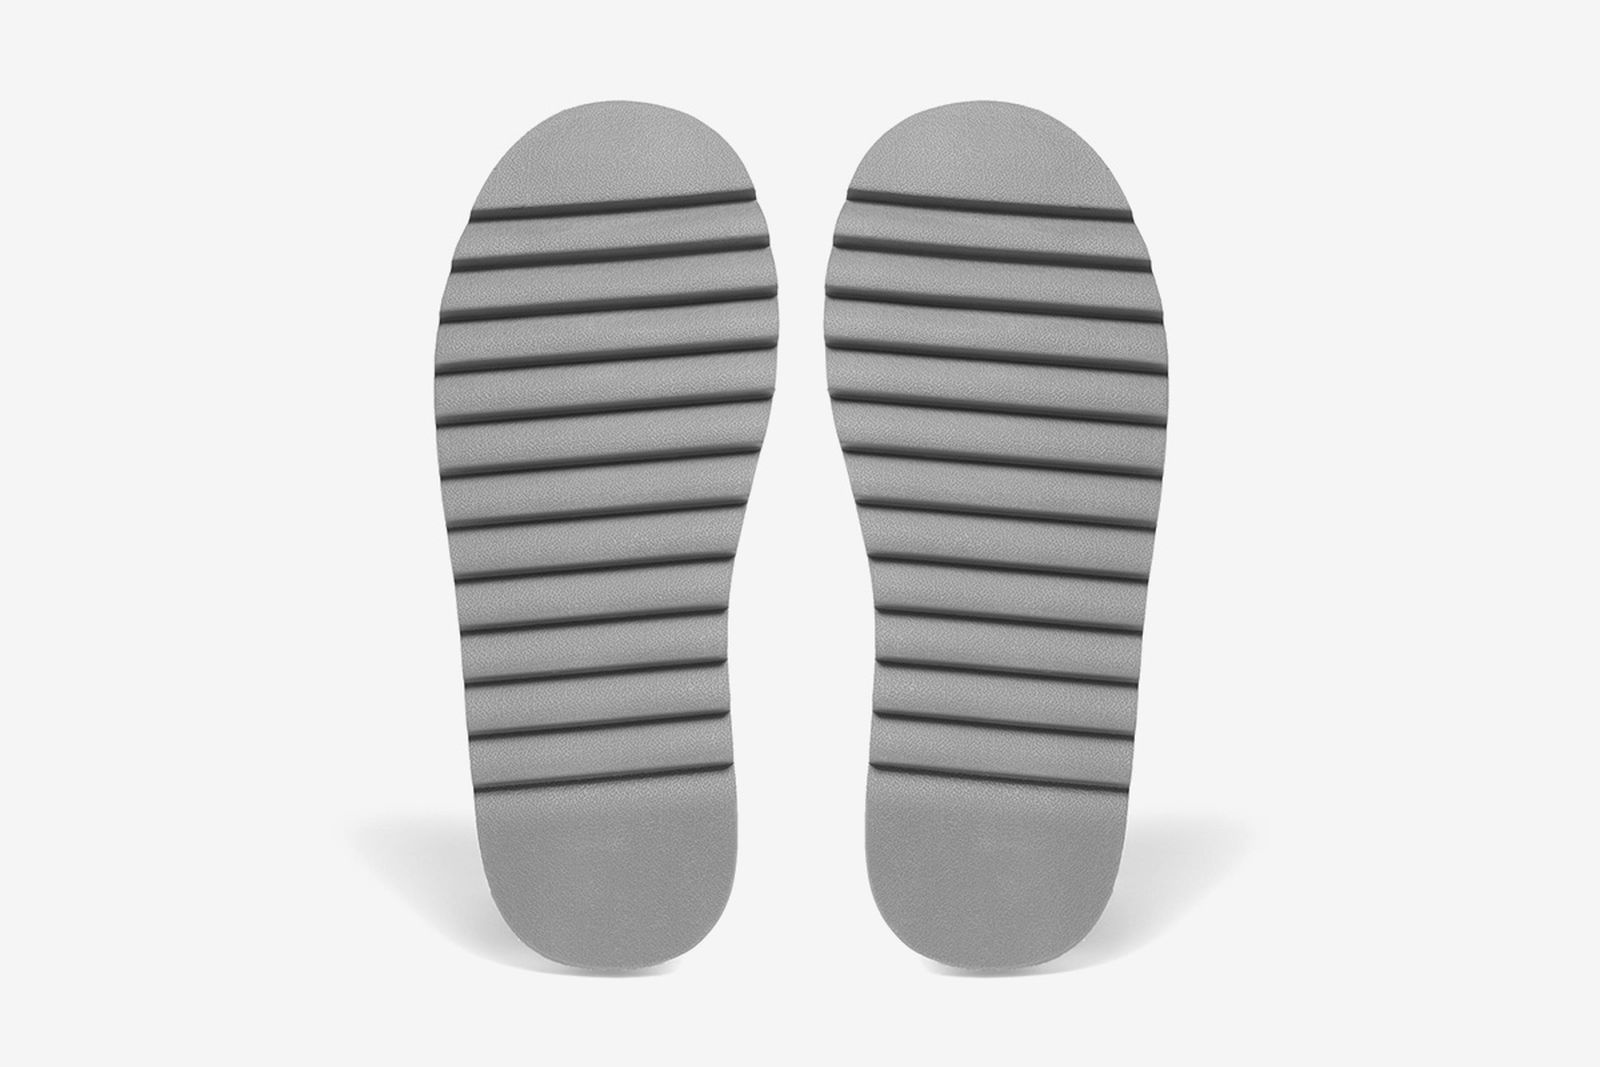 chinatown-market-hotel-slippers-release-date-price-07